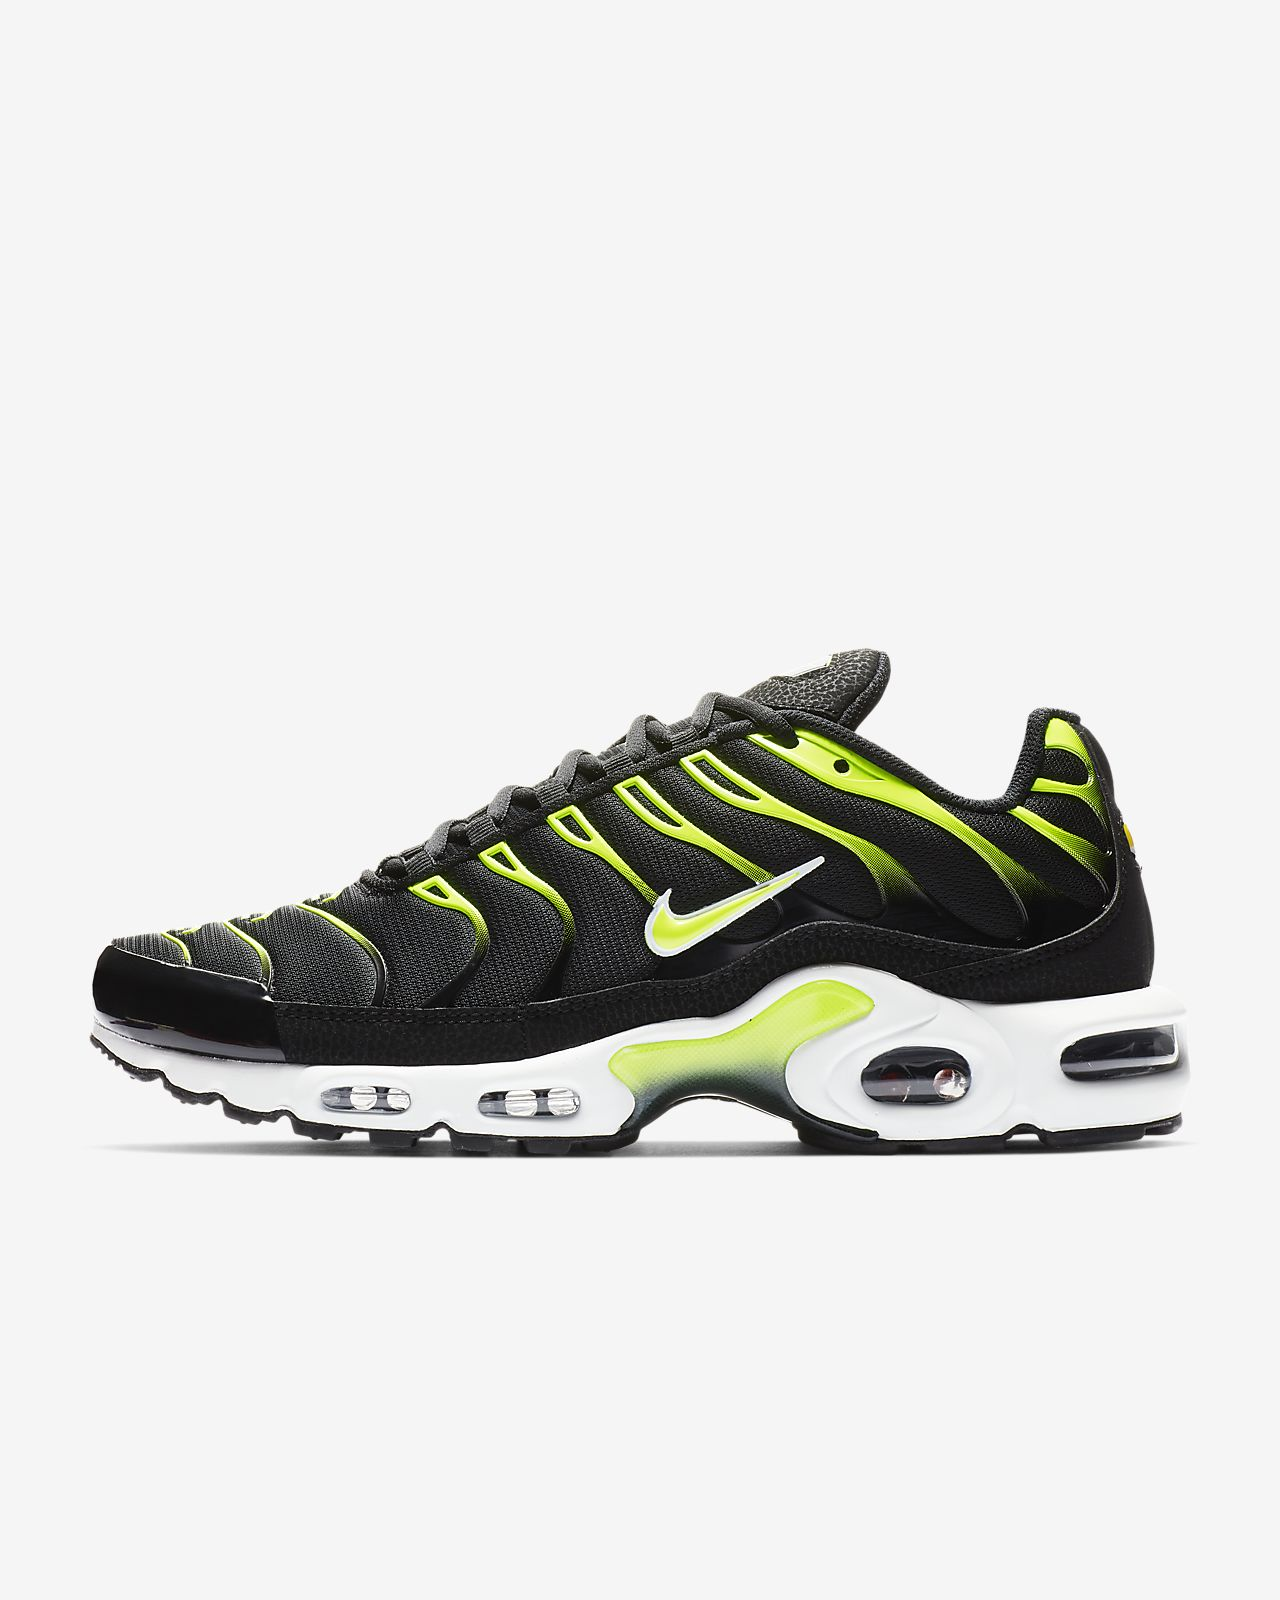 separation shoes fc759 c4f9c Nike Air Max Plus Men's Shoe. Nike.com GB